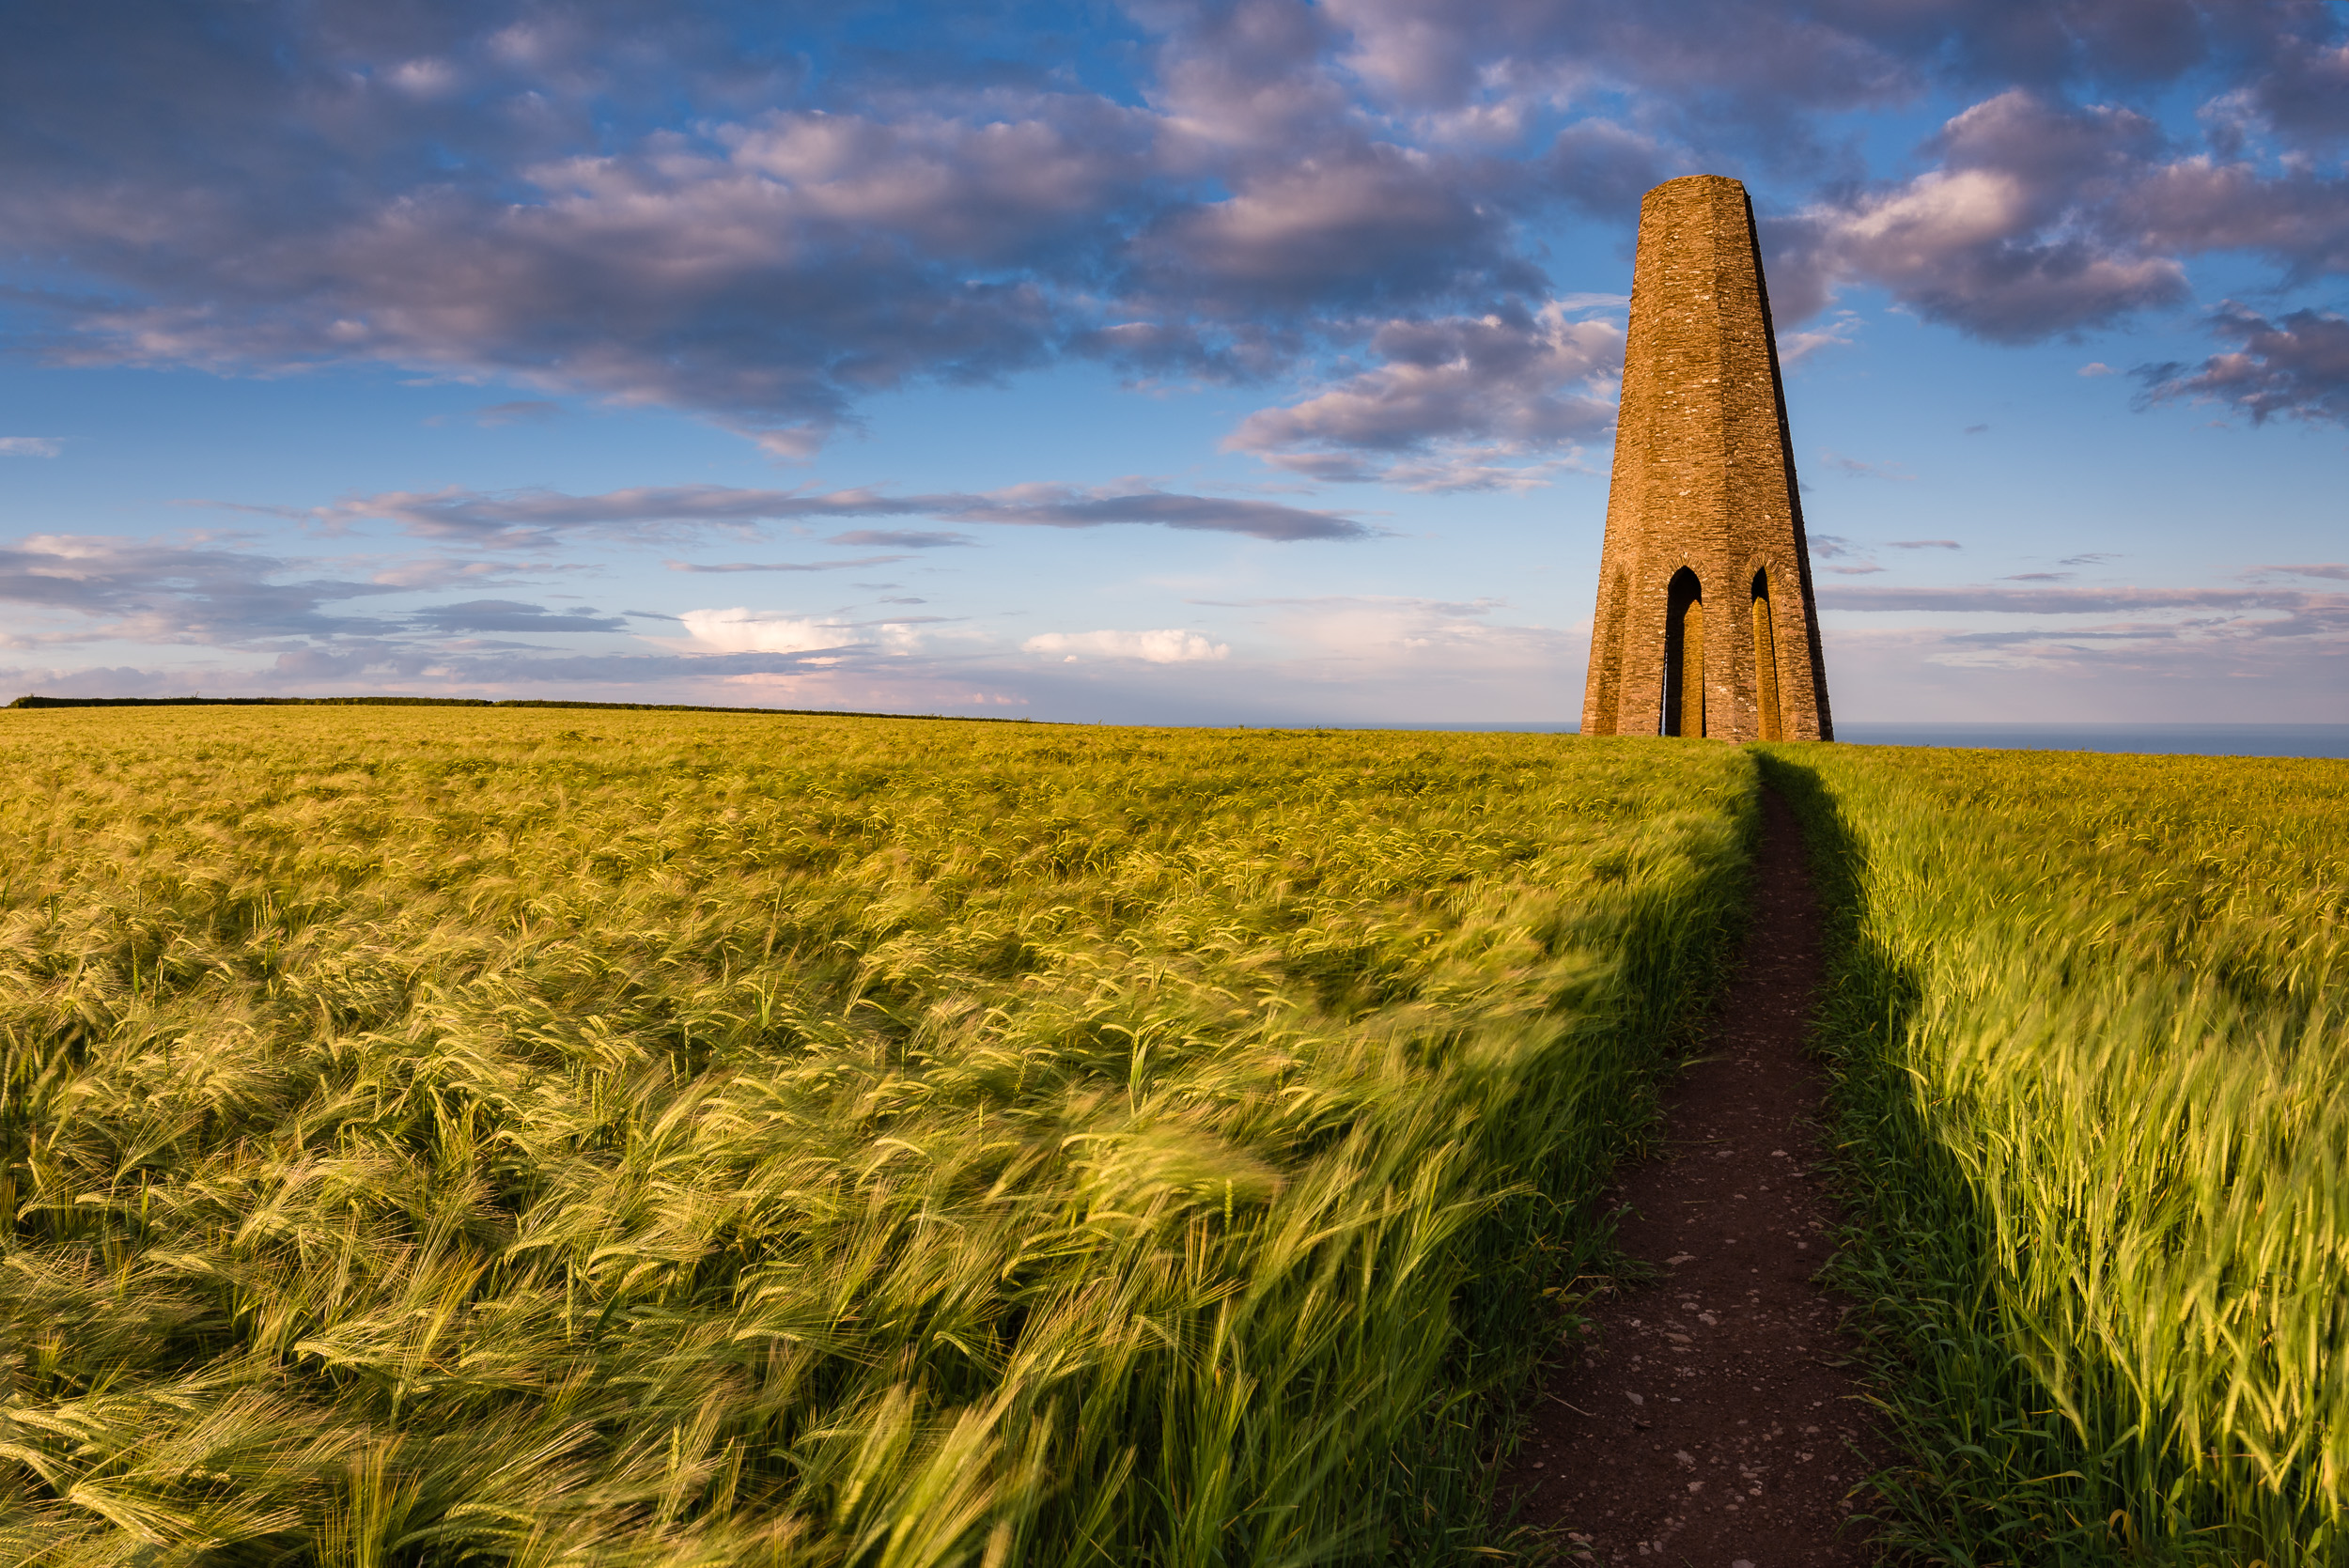 Daymark Tower - Nikon D750, Nikkor 16-35 f/4 at 16 mm, f/13, 1/15 second, ISO 100.